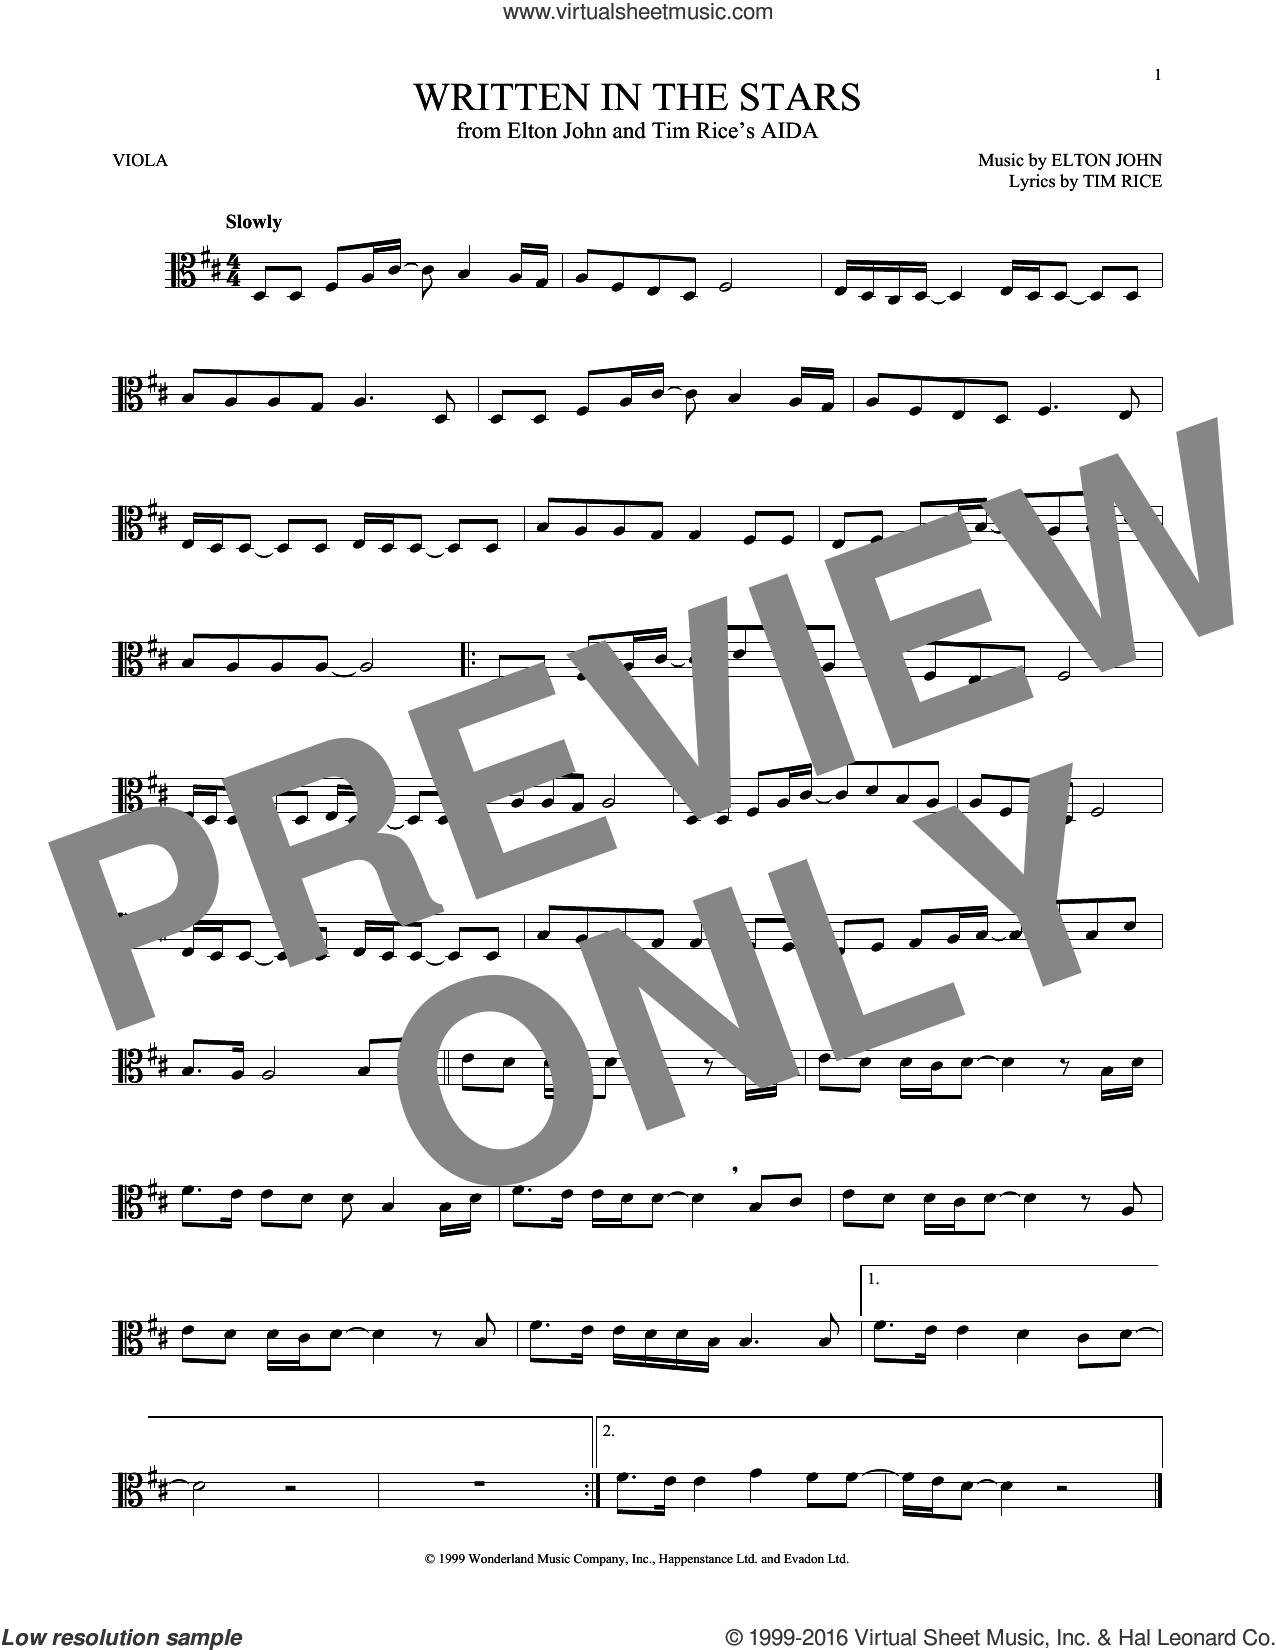 Written In The Stars sheet music for viola solo by Elton John and Tim Rice. Score Image Preview.